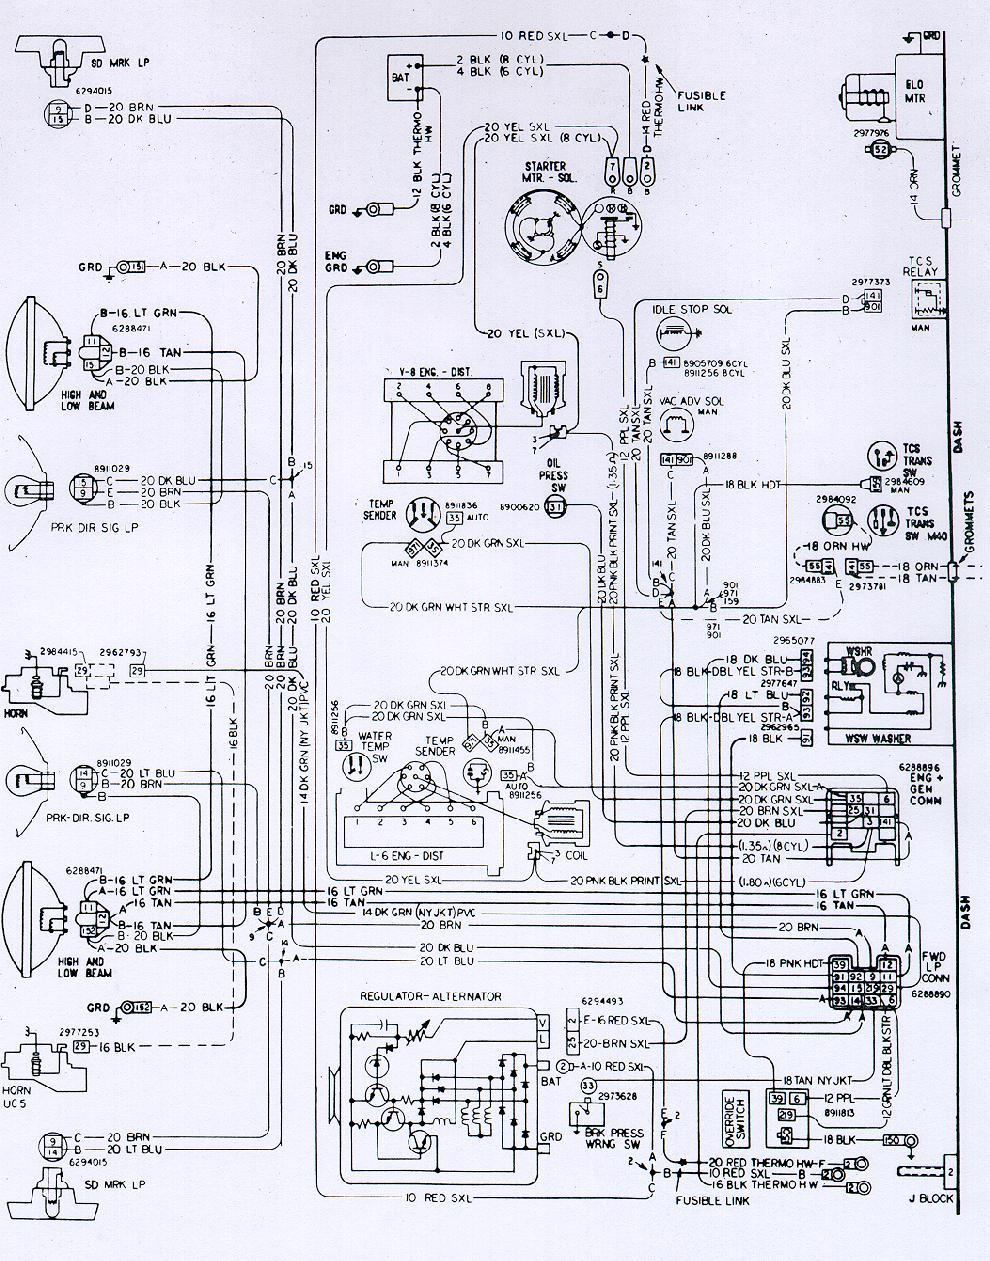 hight resolution of 1977 camaro dash wiring diagram wiring diagram third level rh 2 11 11 jacobwinterstein com 69 camaro firewall wiring 1968 camaro wiring diagram